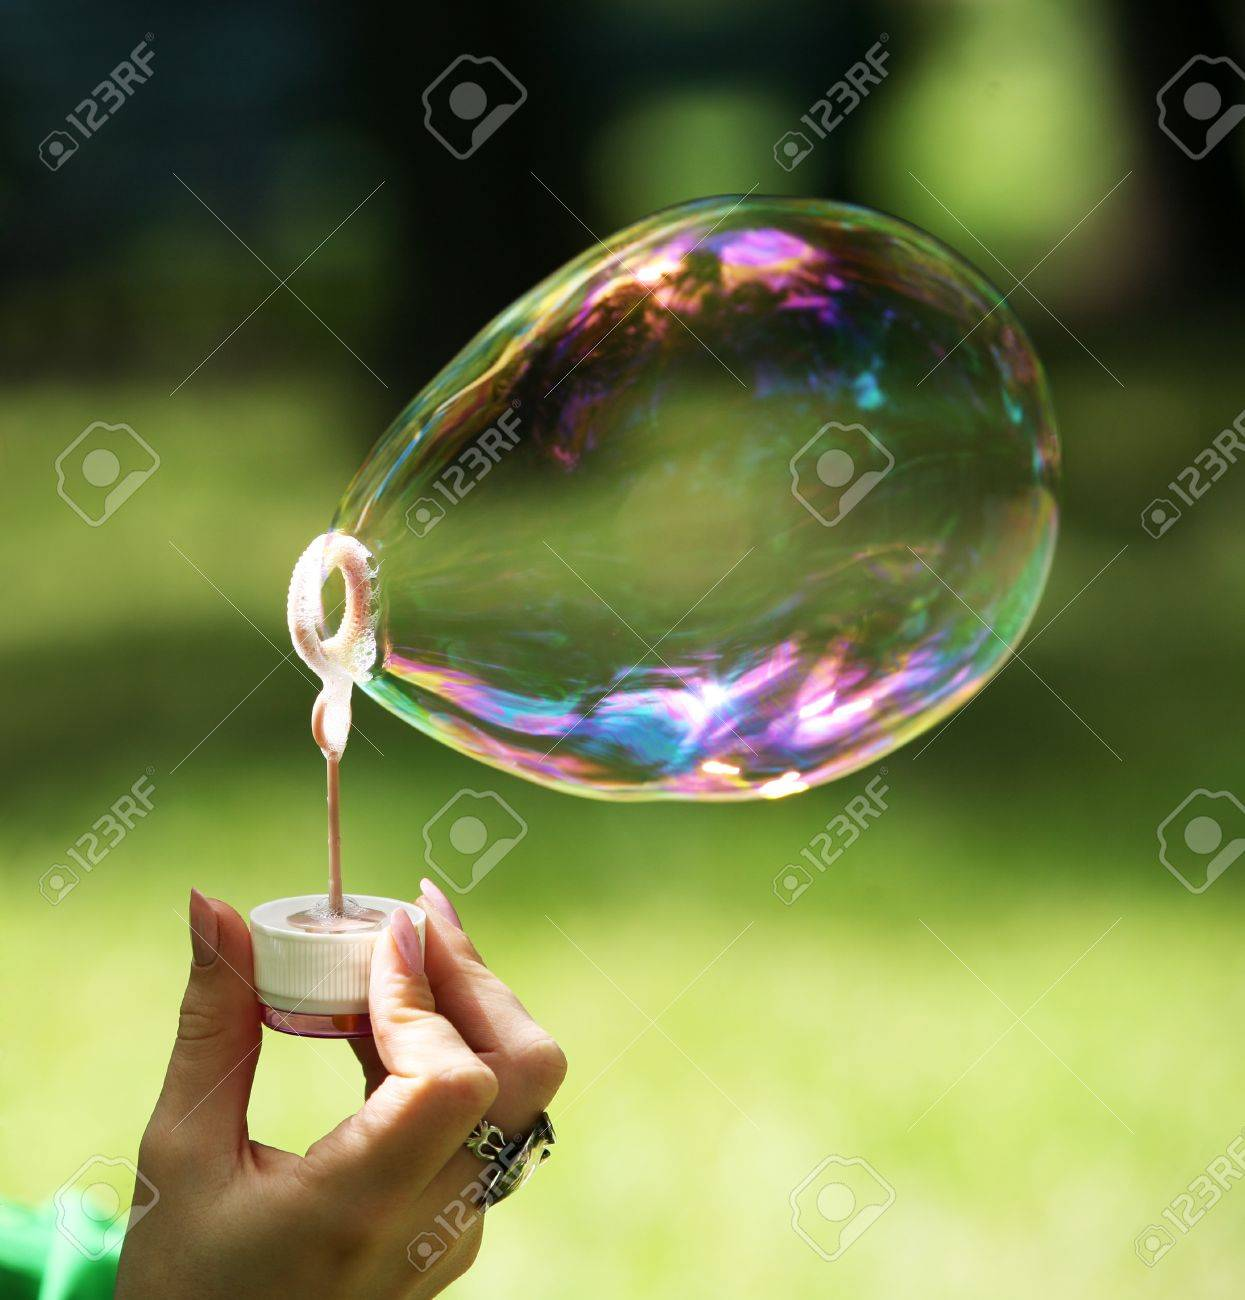 dream bubble stock photos royalty free dream bubble images and